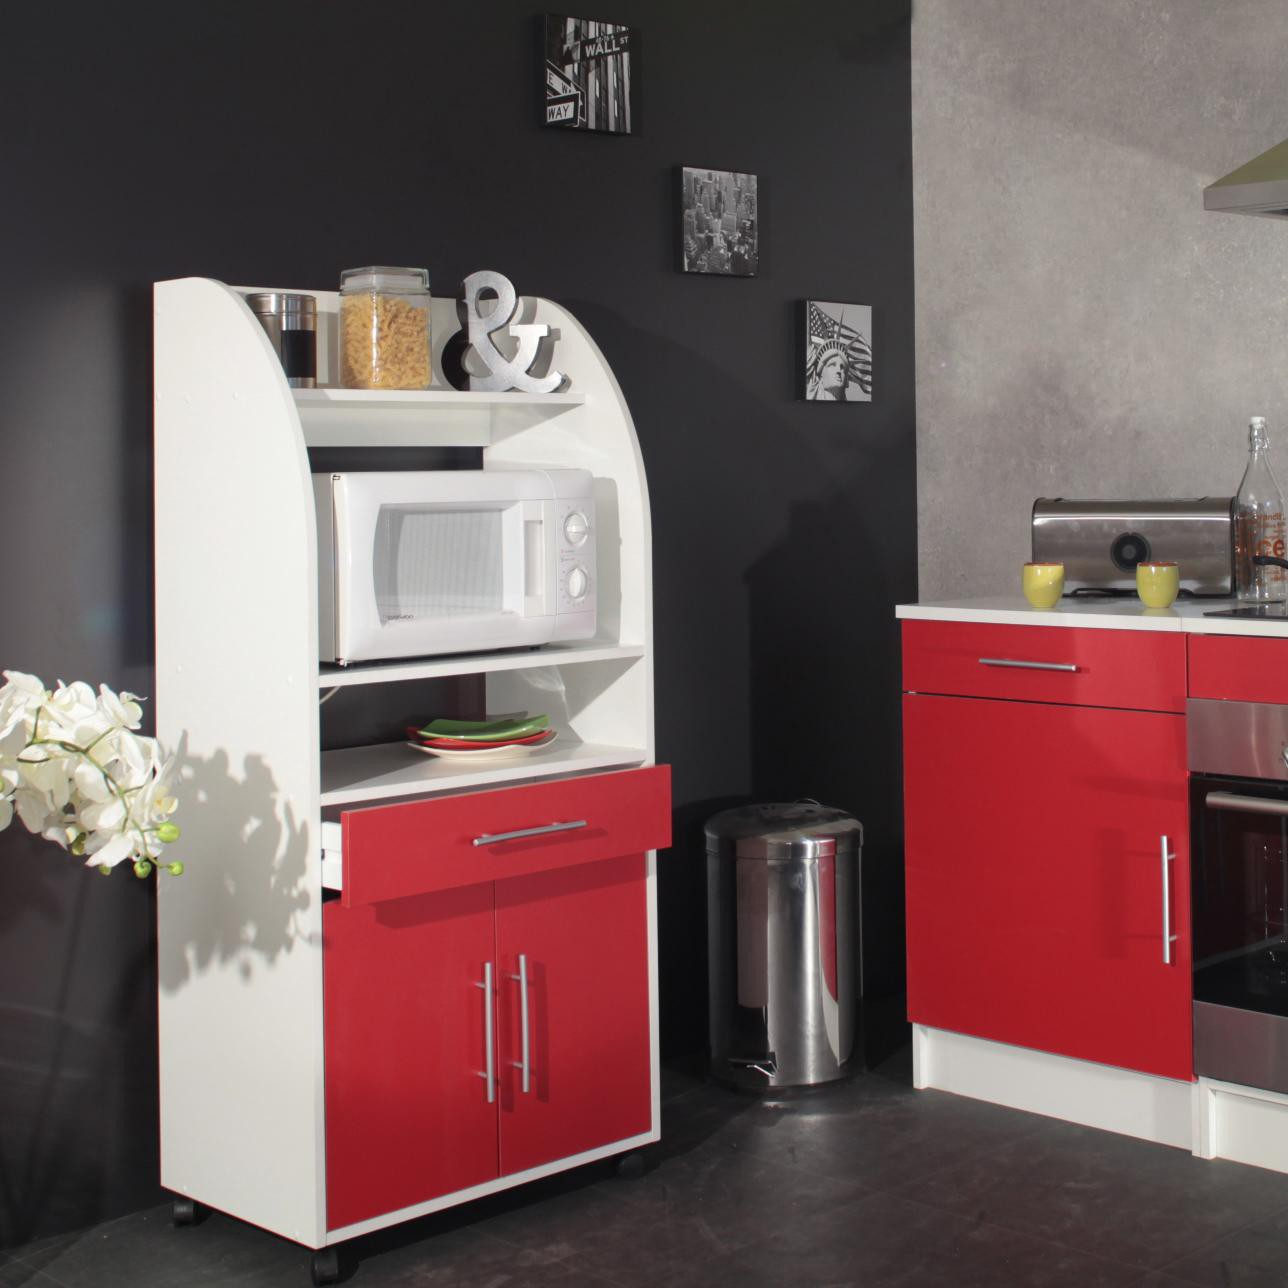 meuble de cuisine pas cher rouge maison et mobilier d 39 int rieur. Black Bedroom Furniture Sets. Home Design Ideas